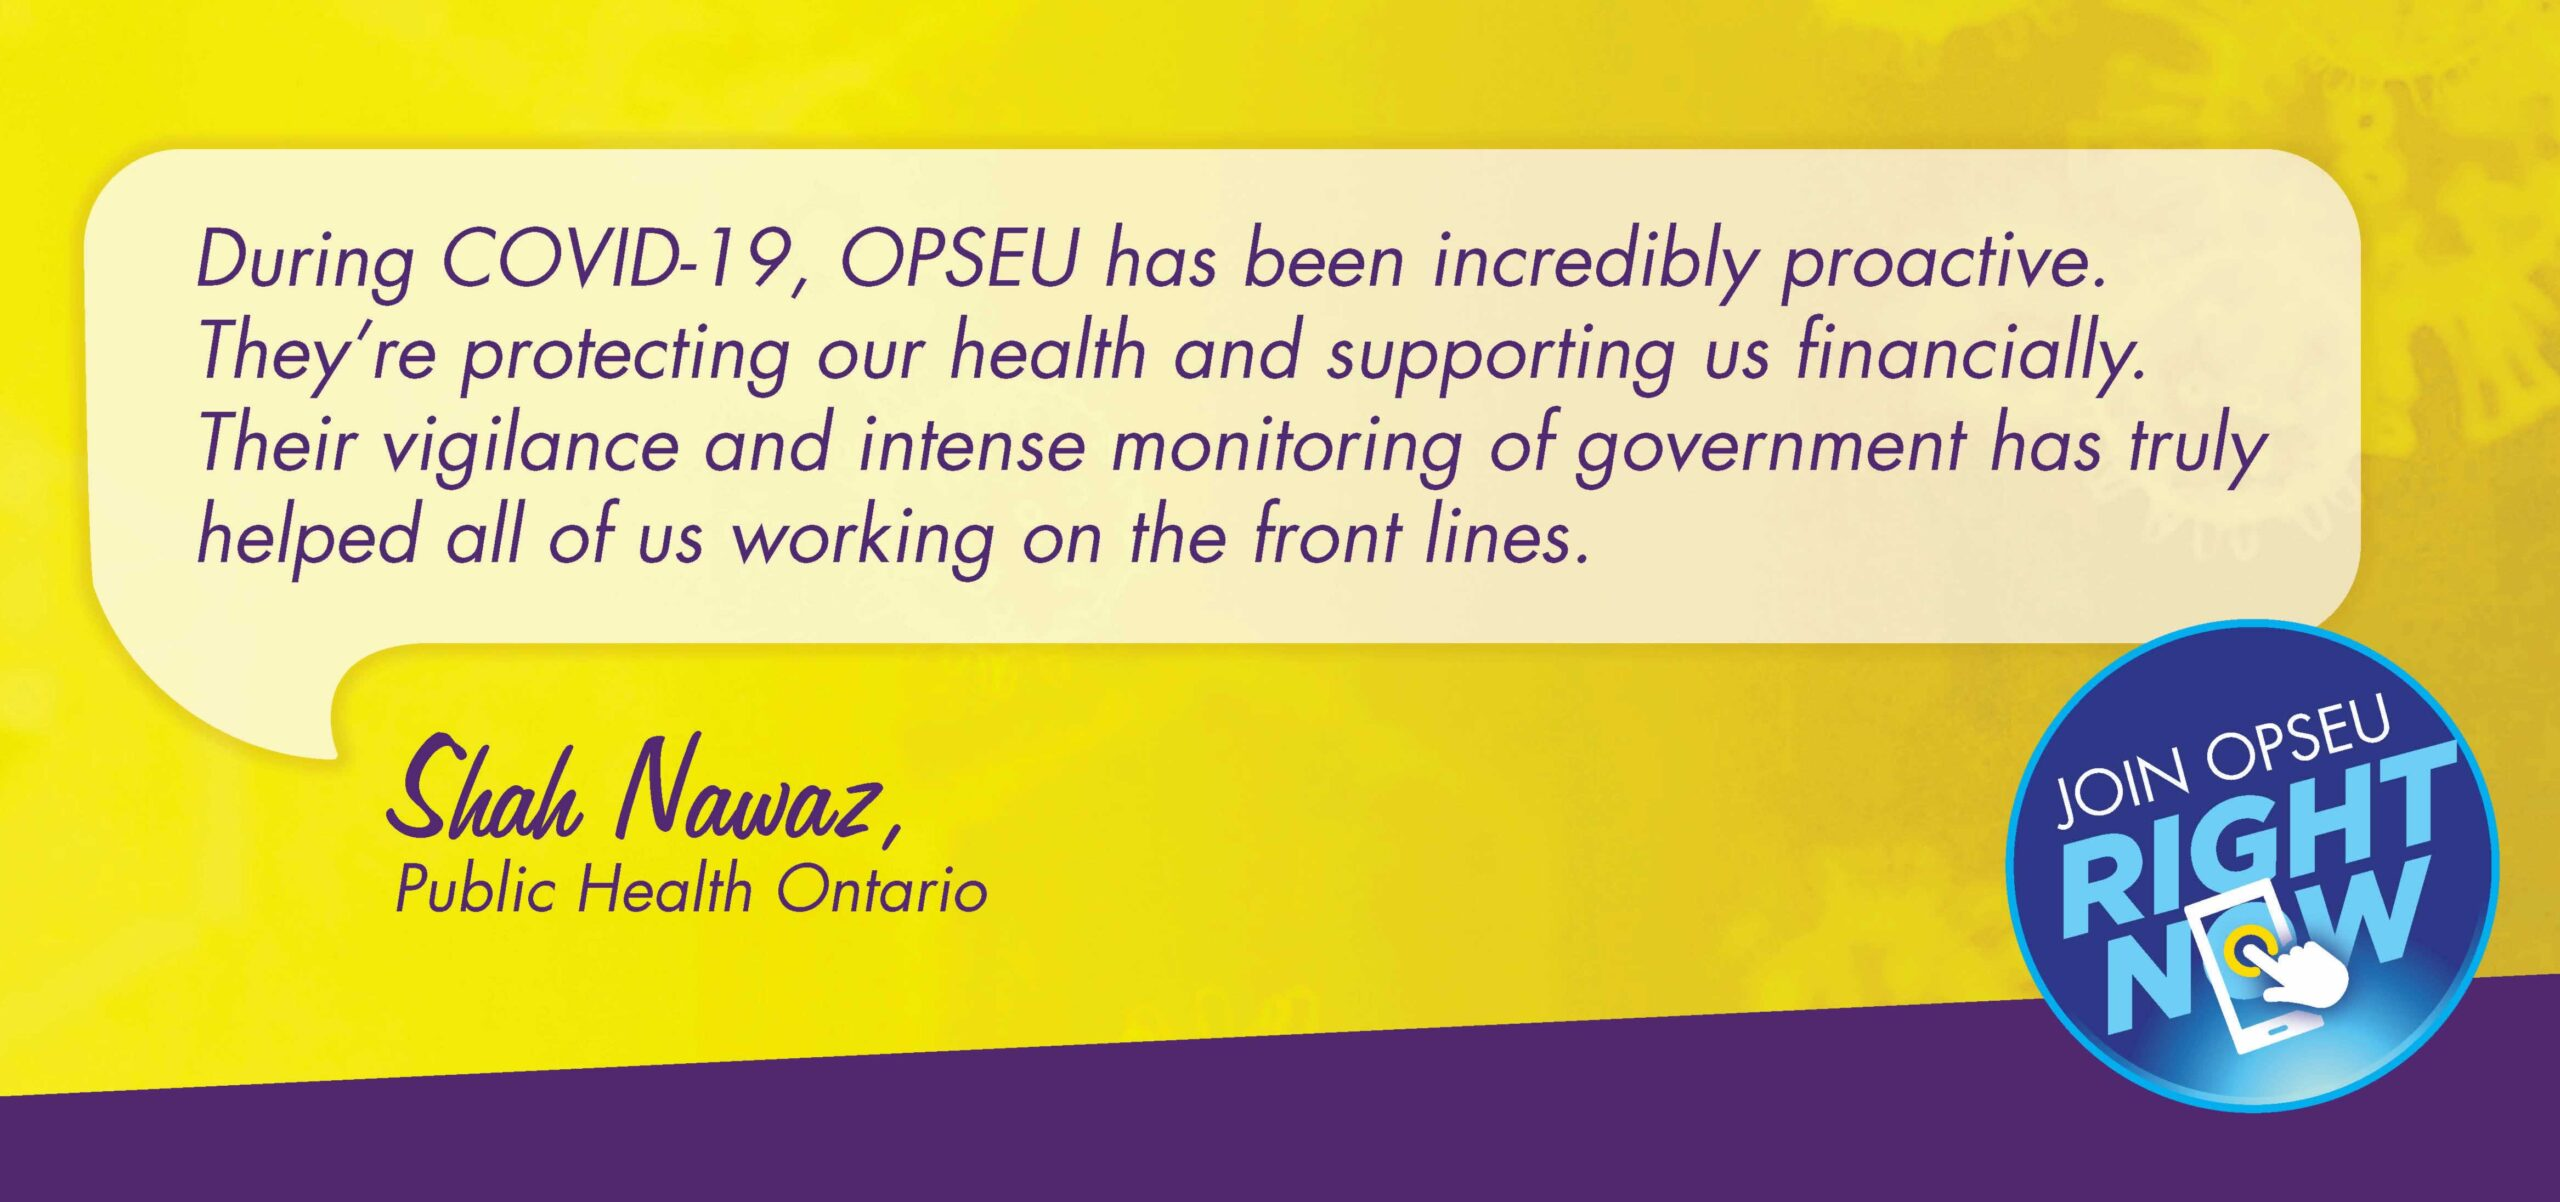 Duing COVID-19 OPSEU has been incredibly proactive. They're protecting ourhealth and supporitng us financially. Their vigilance and intense morintoring of goveremnet has truly helped all of us workingon the front lines Shah Nawaz, PHO.